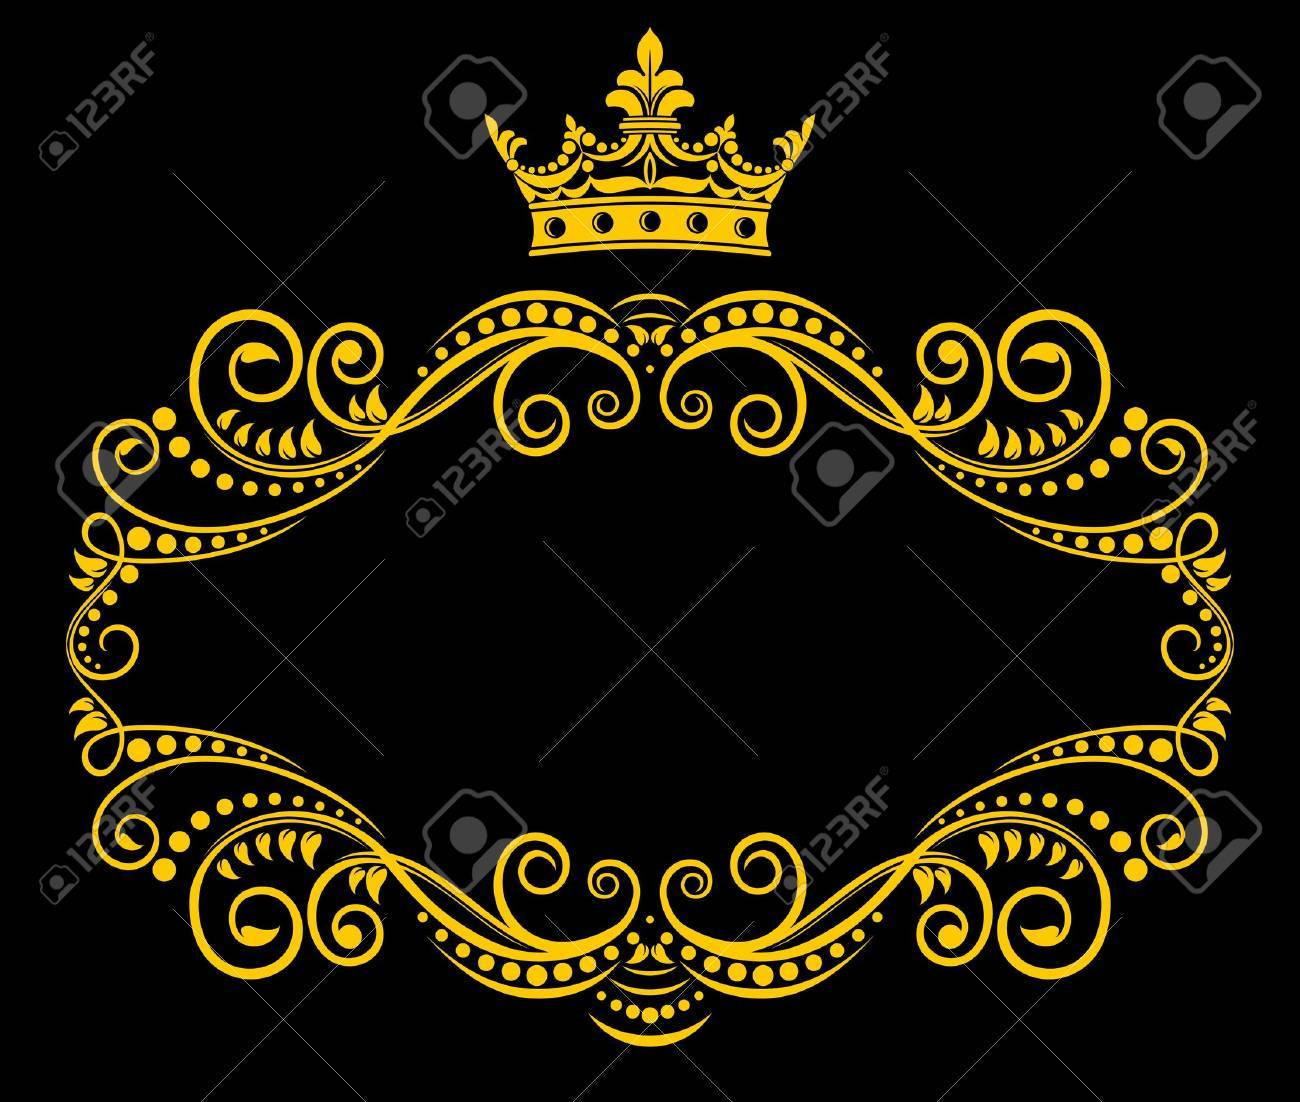 Medieval frame with royal crown in retro style Stock Vector - 12497812